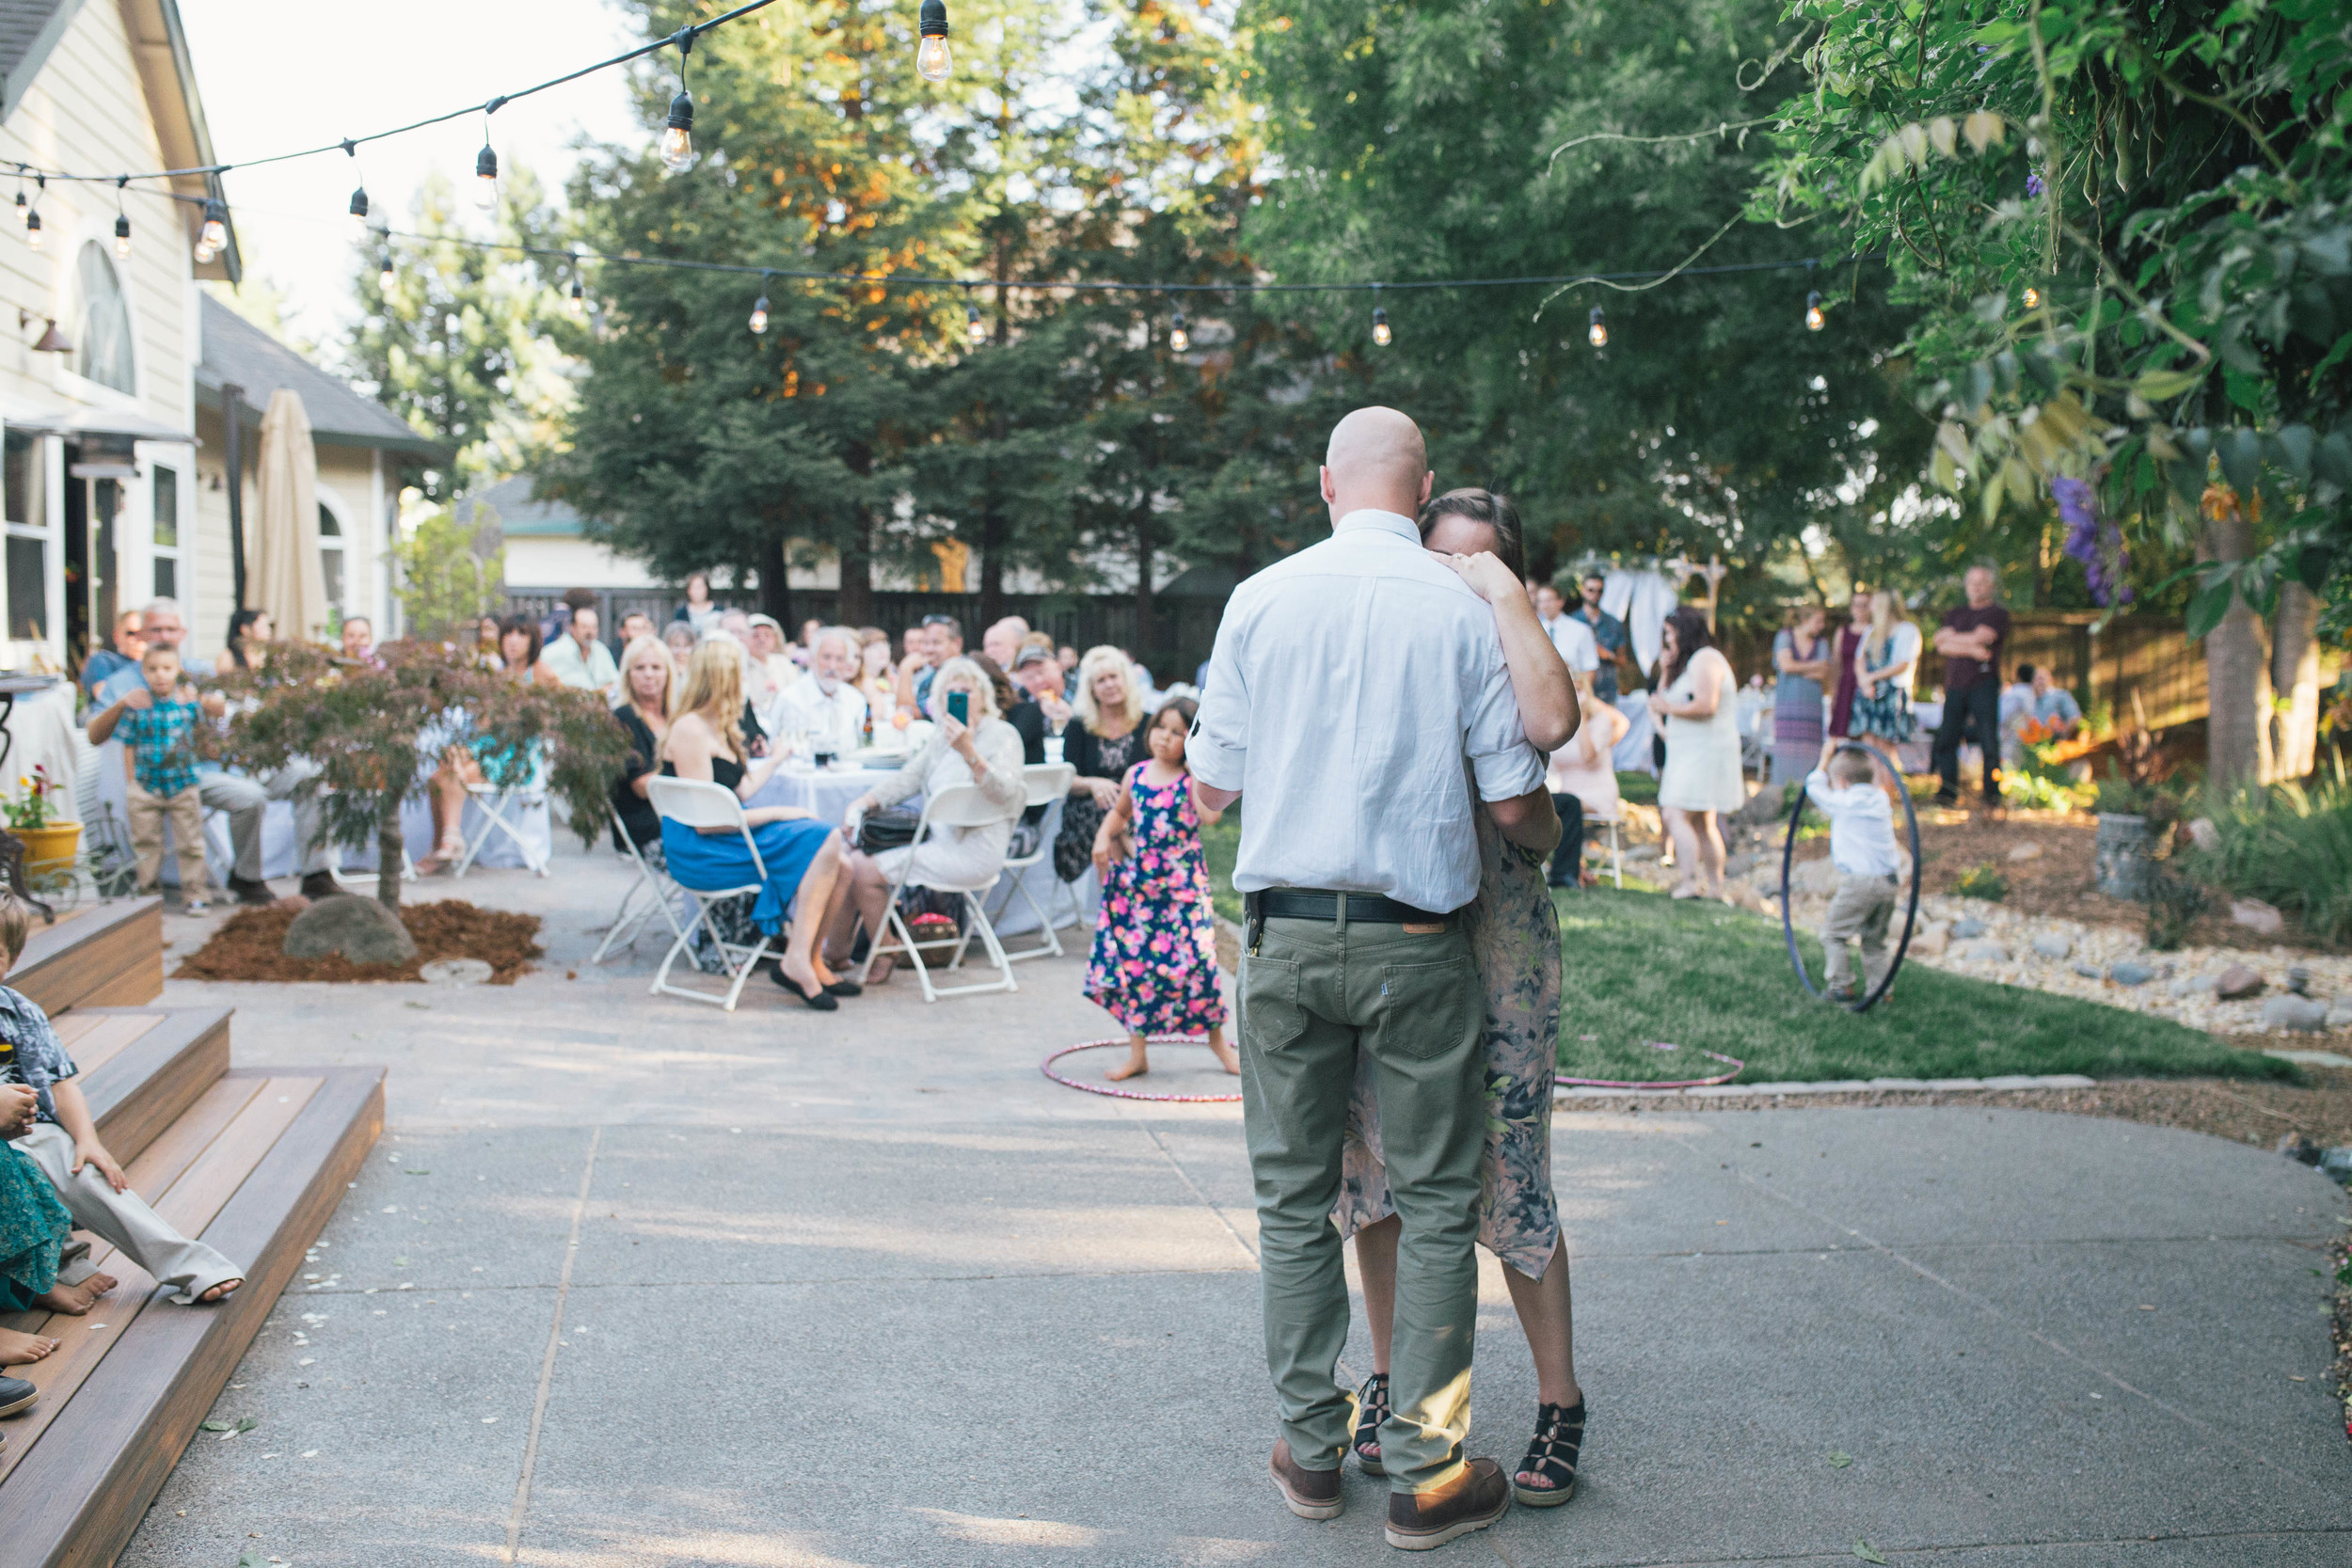 sonoma-county-wedding-photographer-backyard-mother-son-dance